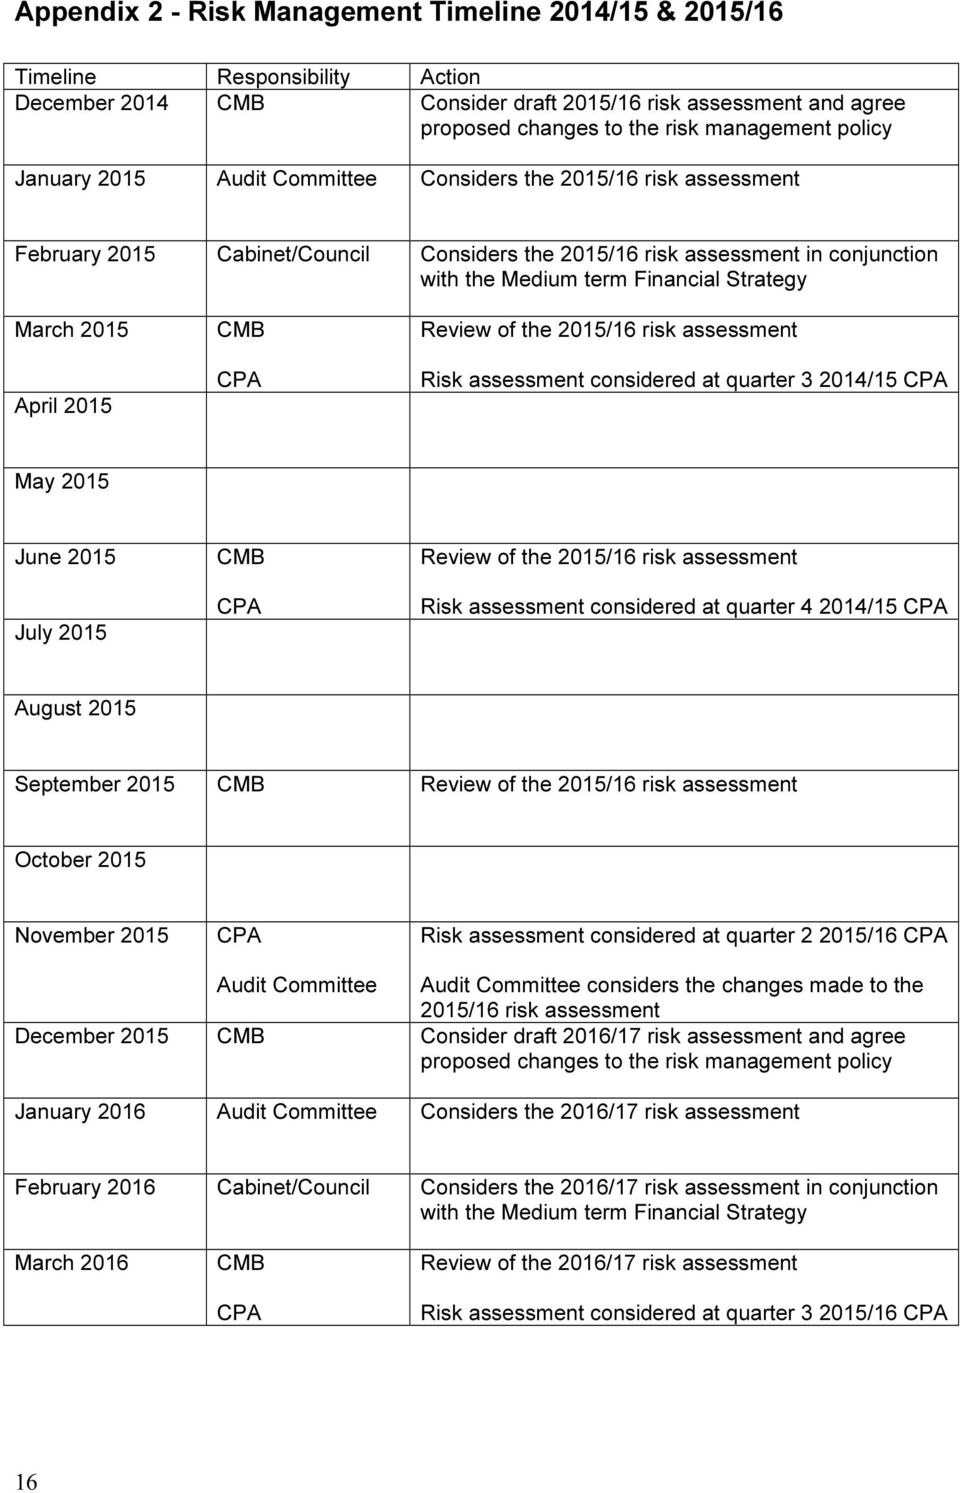 March 2015 April 2015 CMB CPA Review of the 2015/16 risk assessment Risk assessment considered at quarter 3 2014/15 CPA May 2015 June 2015 July 2015 CMB CPA Review of the 2015/16 risk assessment Risk